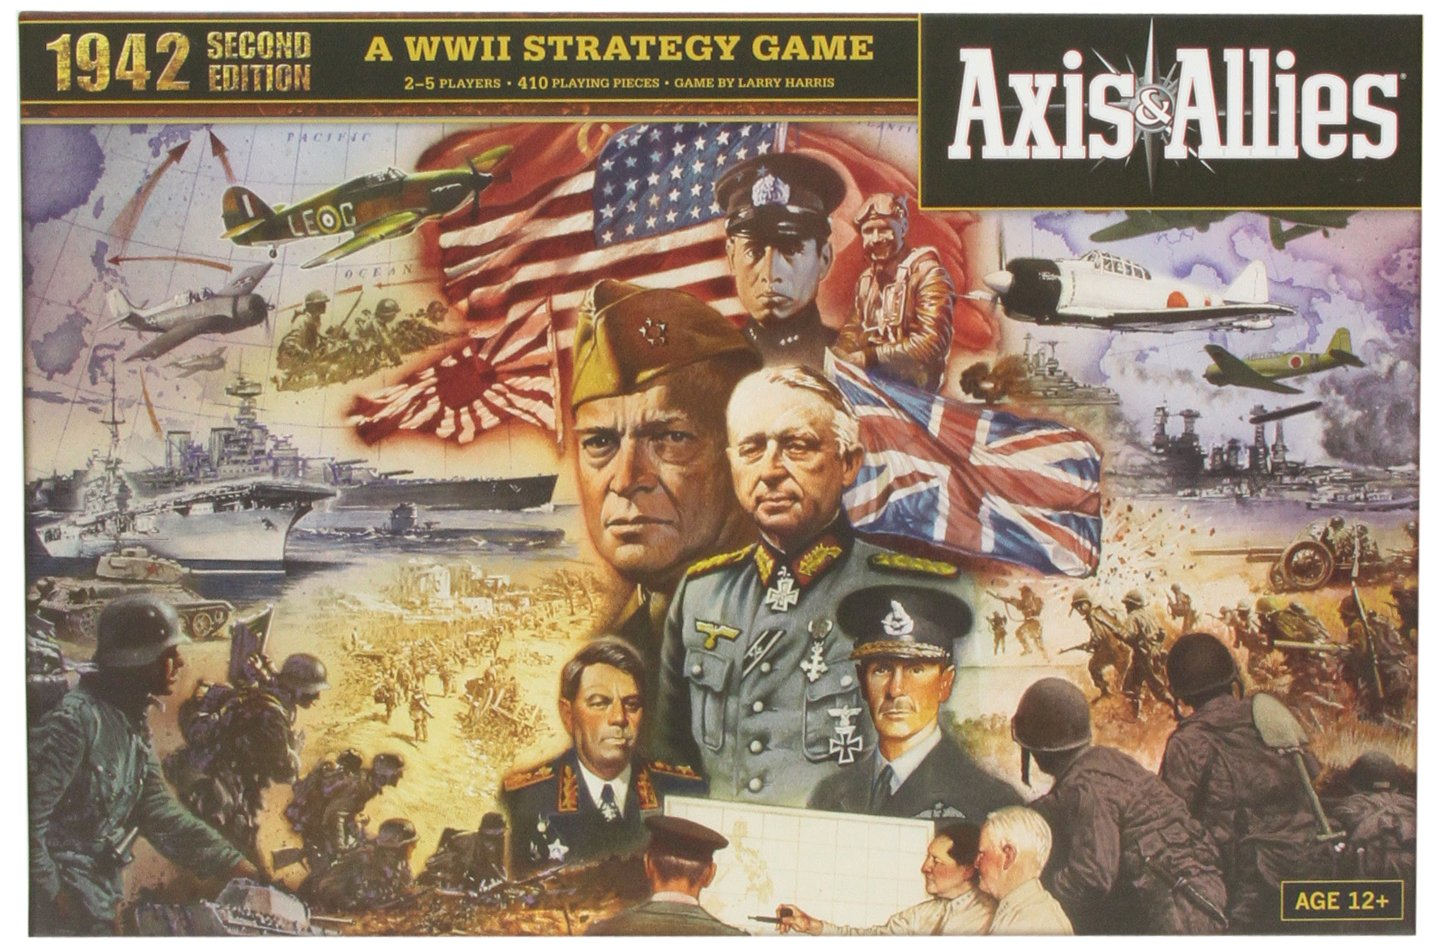 Axis & Allies 1942 Second Edition 14